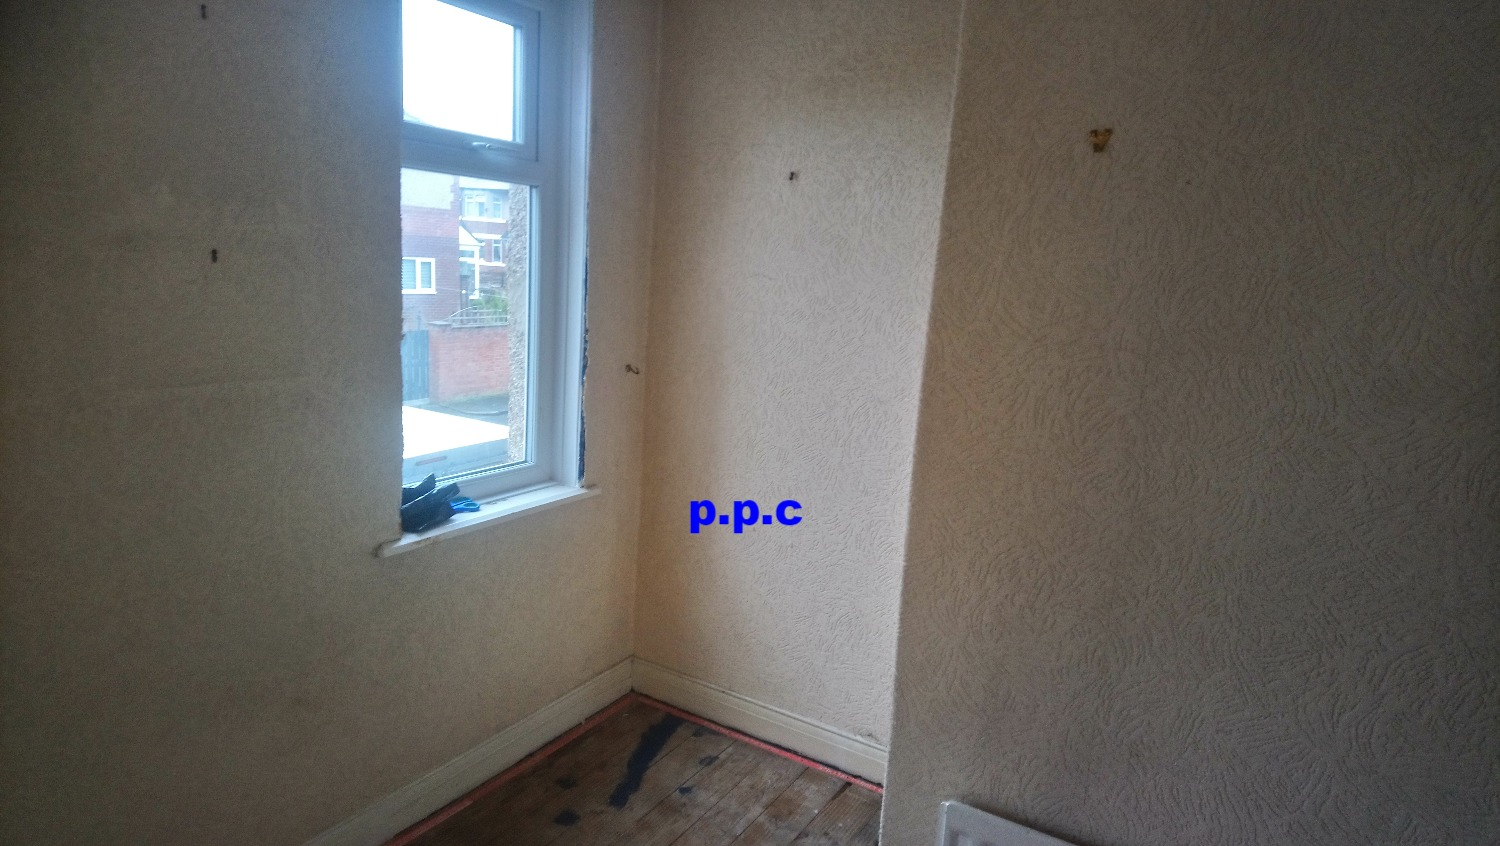 House clearance in fulwell pic 21